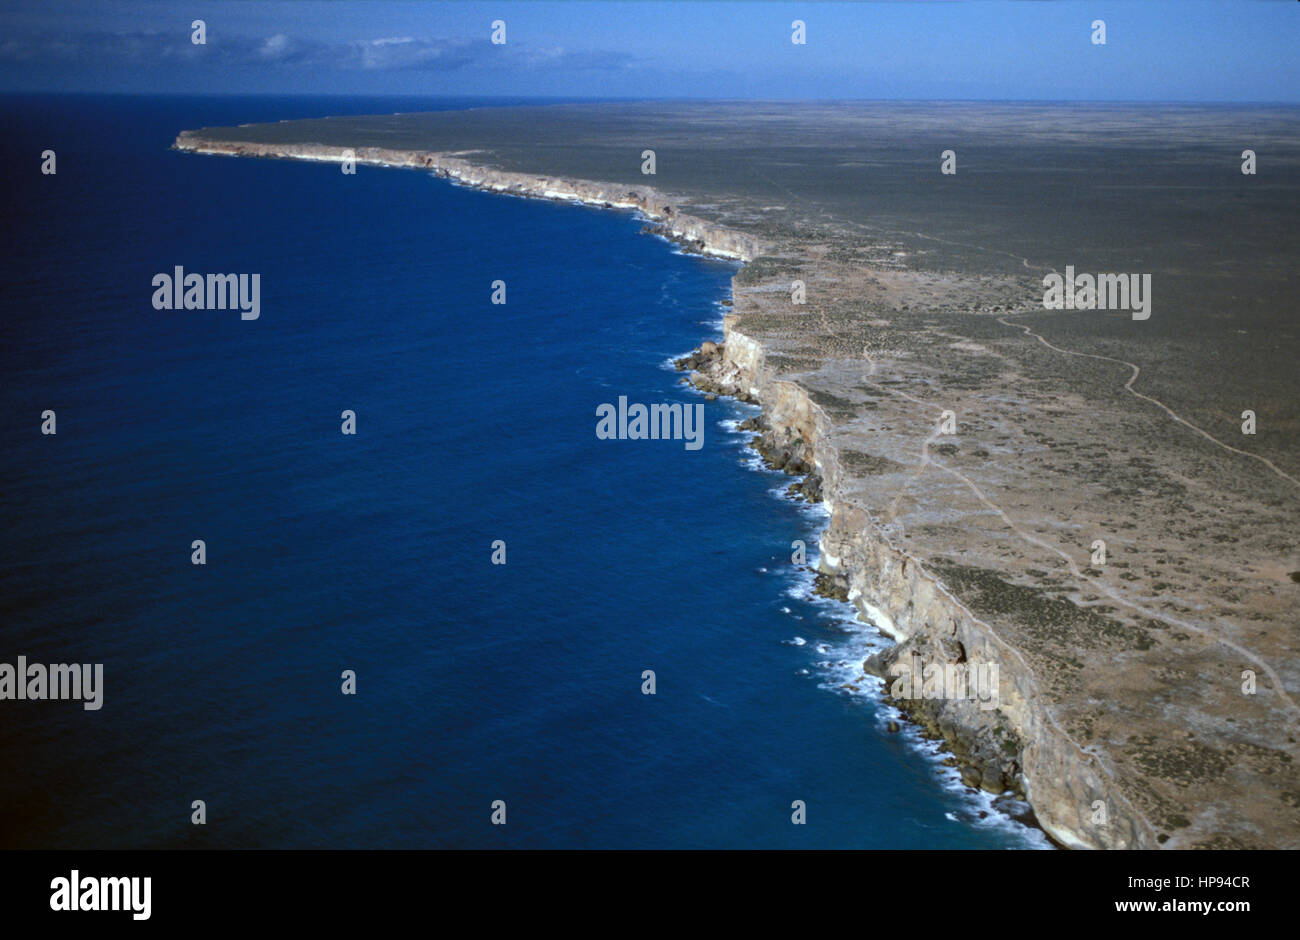 View over the cliffs of the Great Australian Bight Stock Photo